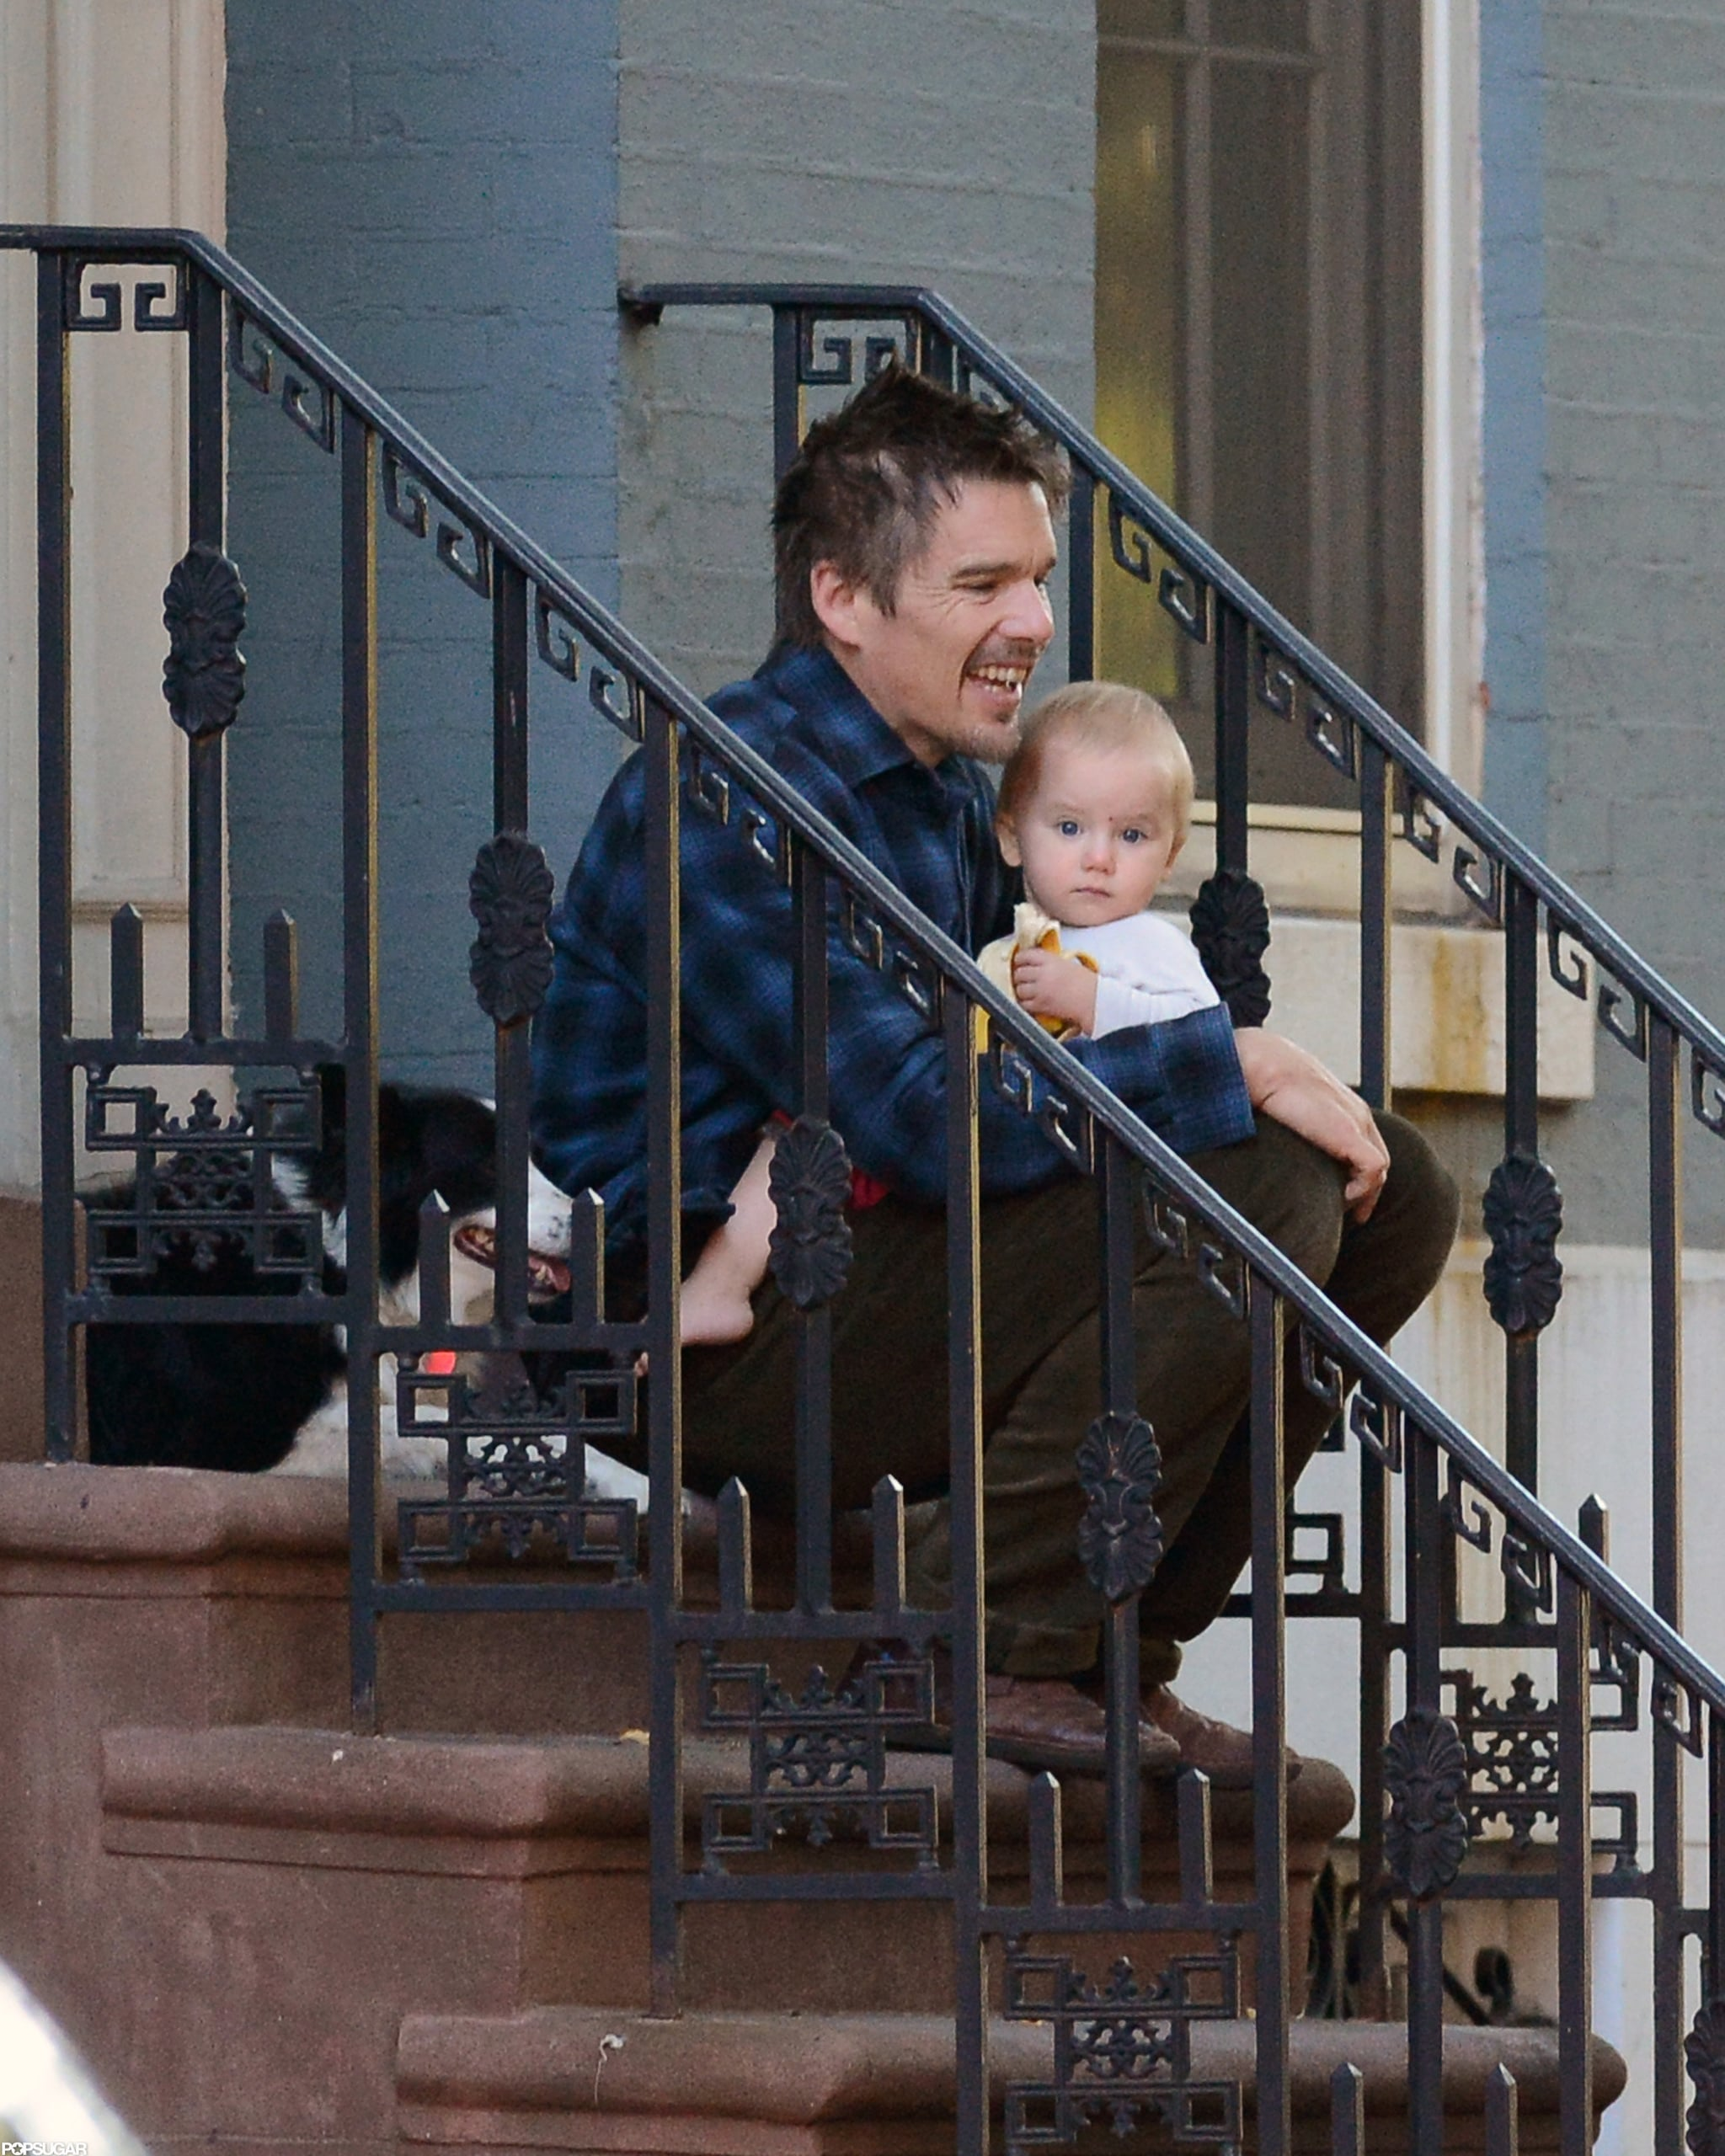 Ethan Hawke sat with his youngest child outside in NYC.